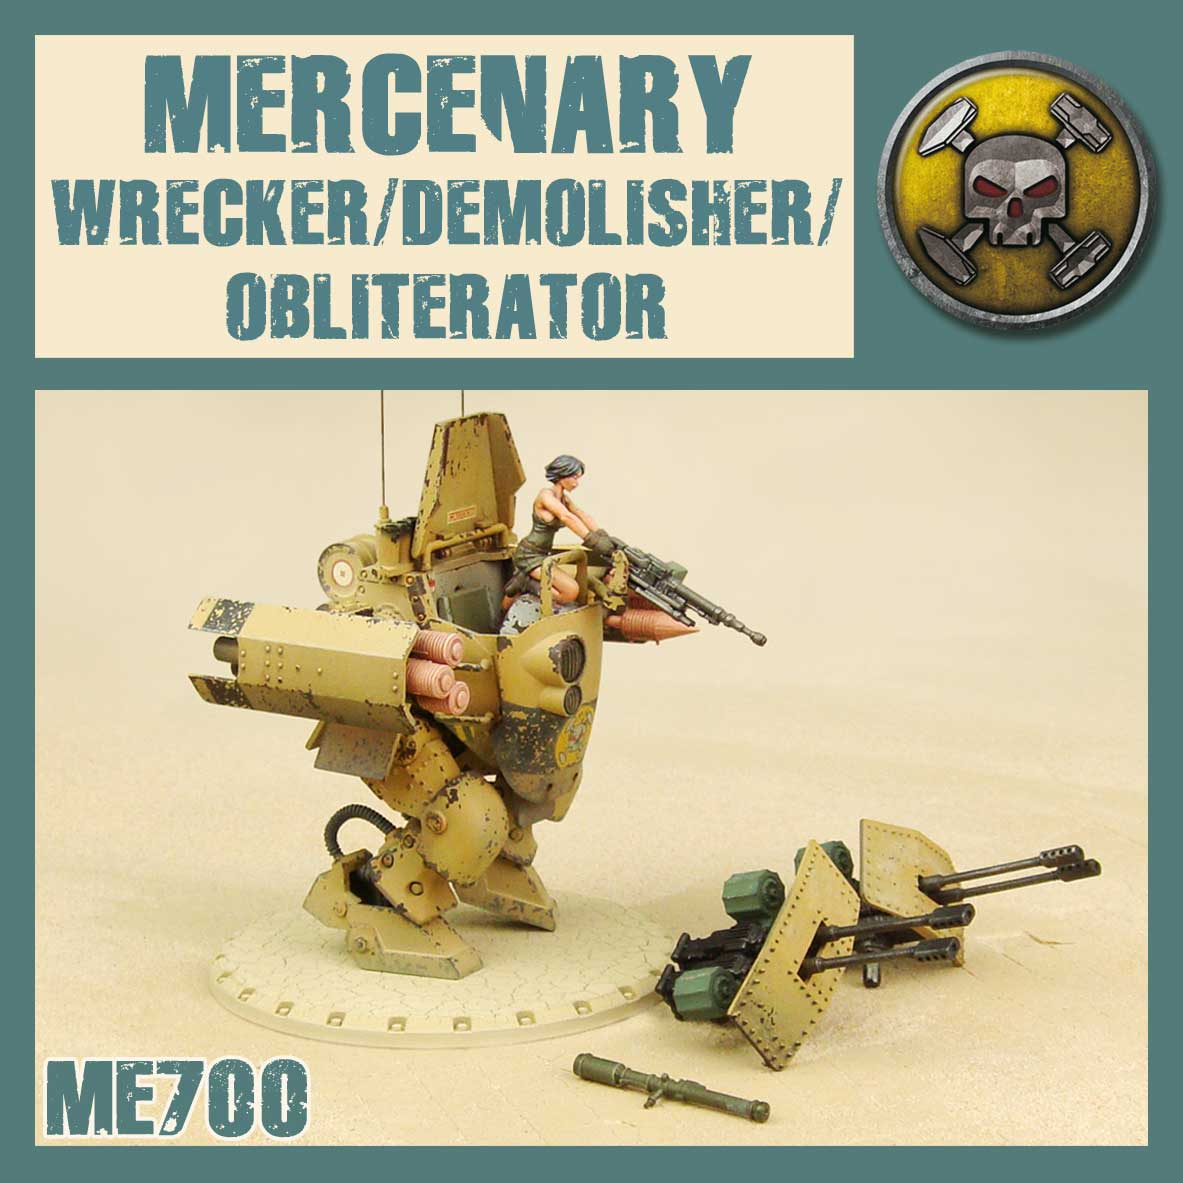 The Wrecker is the same as the one from the starter set, the Demolisher will be perfect with Luisa, releasing in the Mercs HQ Box this summer!